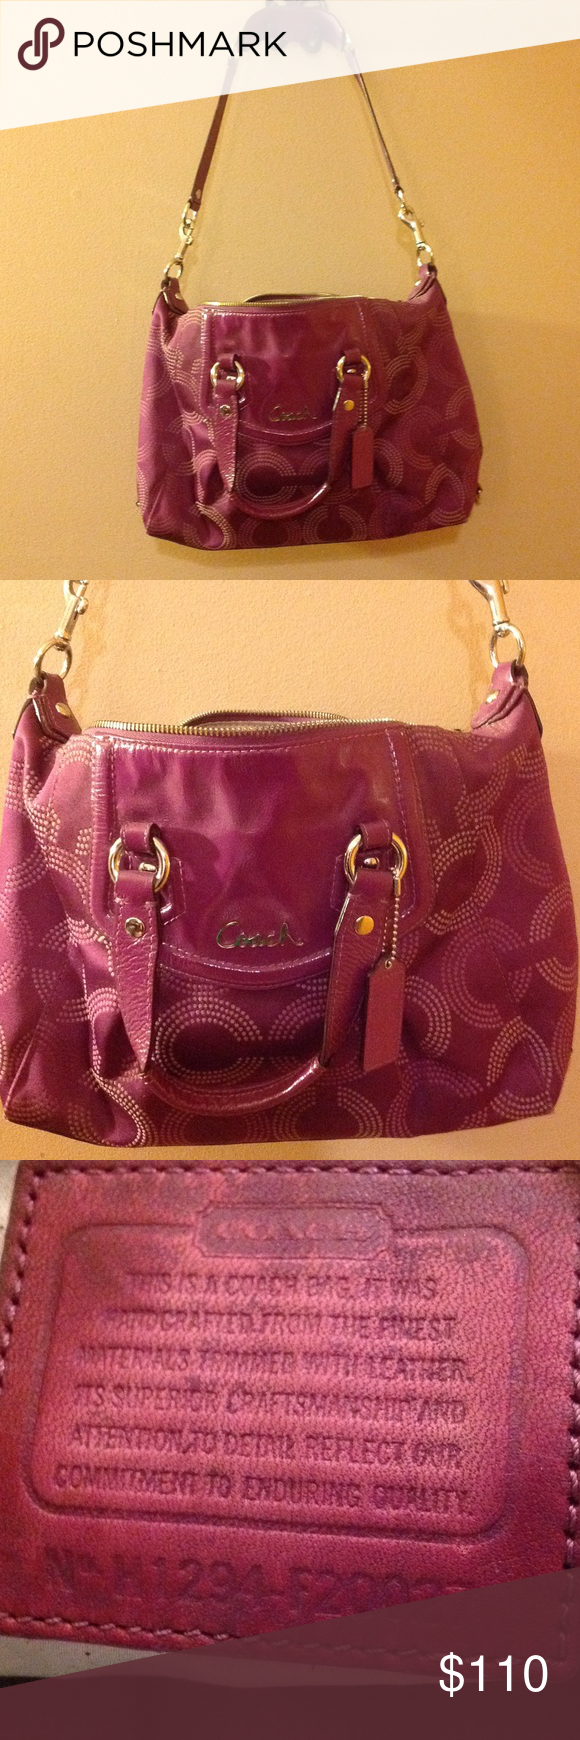 Authentic Coach Fuschia Purple Handbag Rare Underarm Made By Some Very Minor Wear On The Bottom And Pen Marks Grey